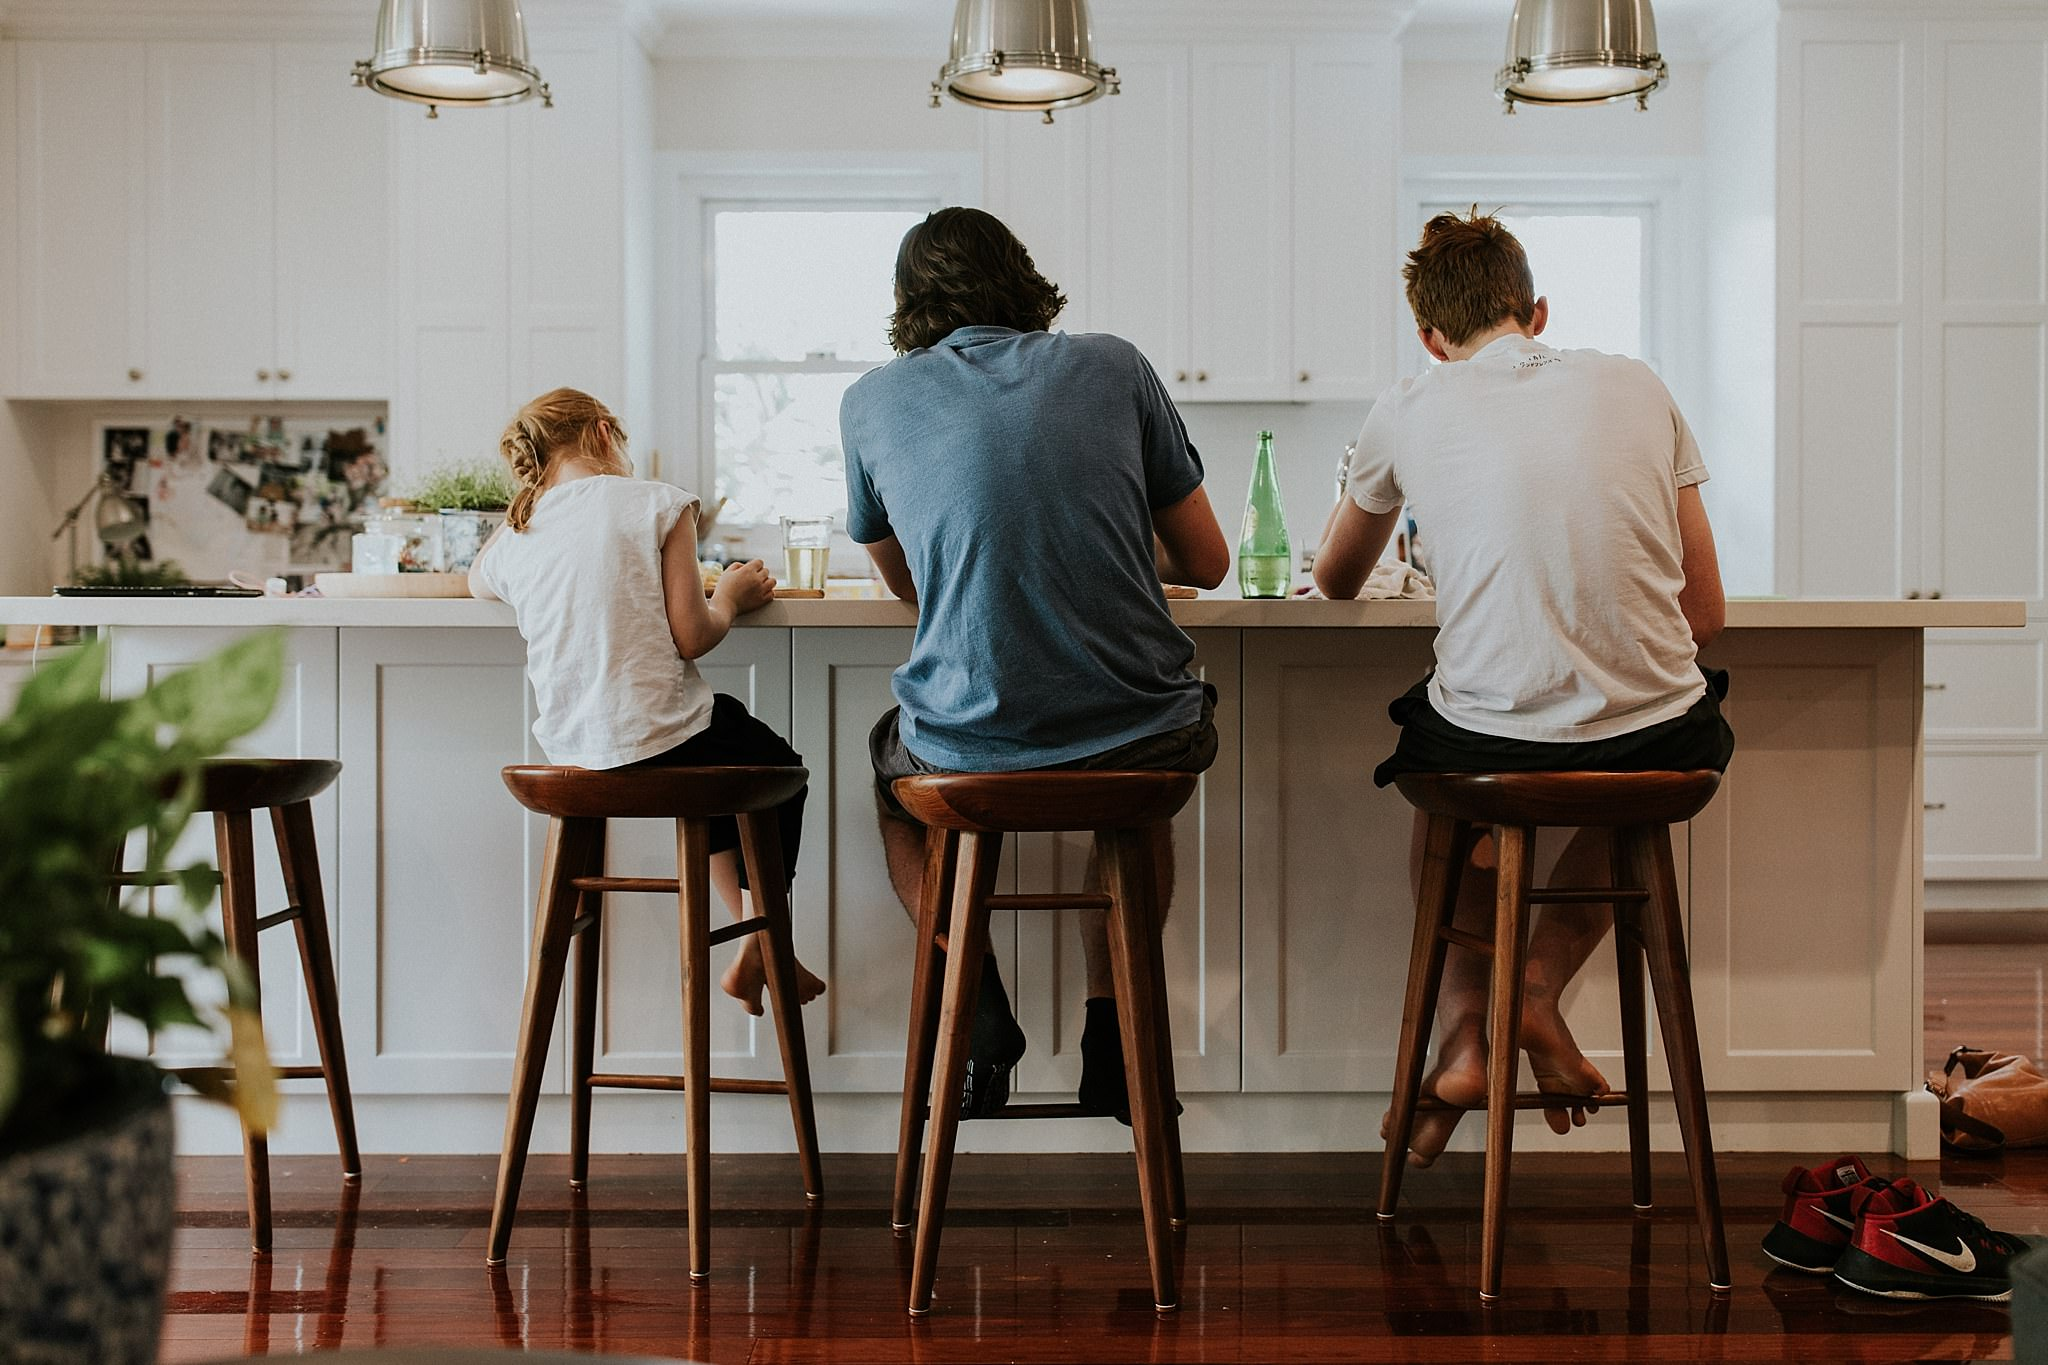 Family photo shoot with father and children sitting at kitchen bench